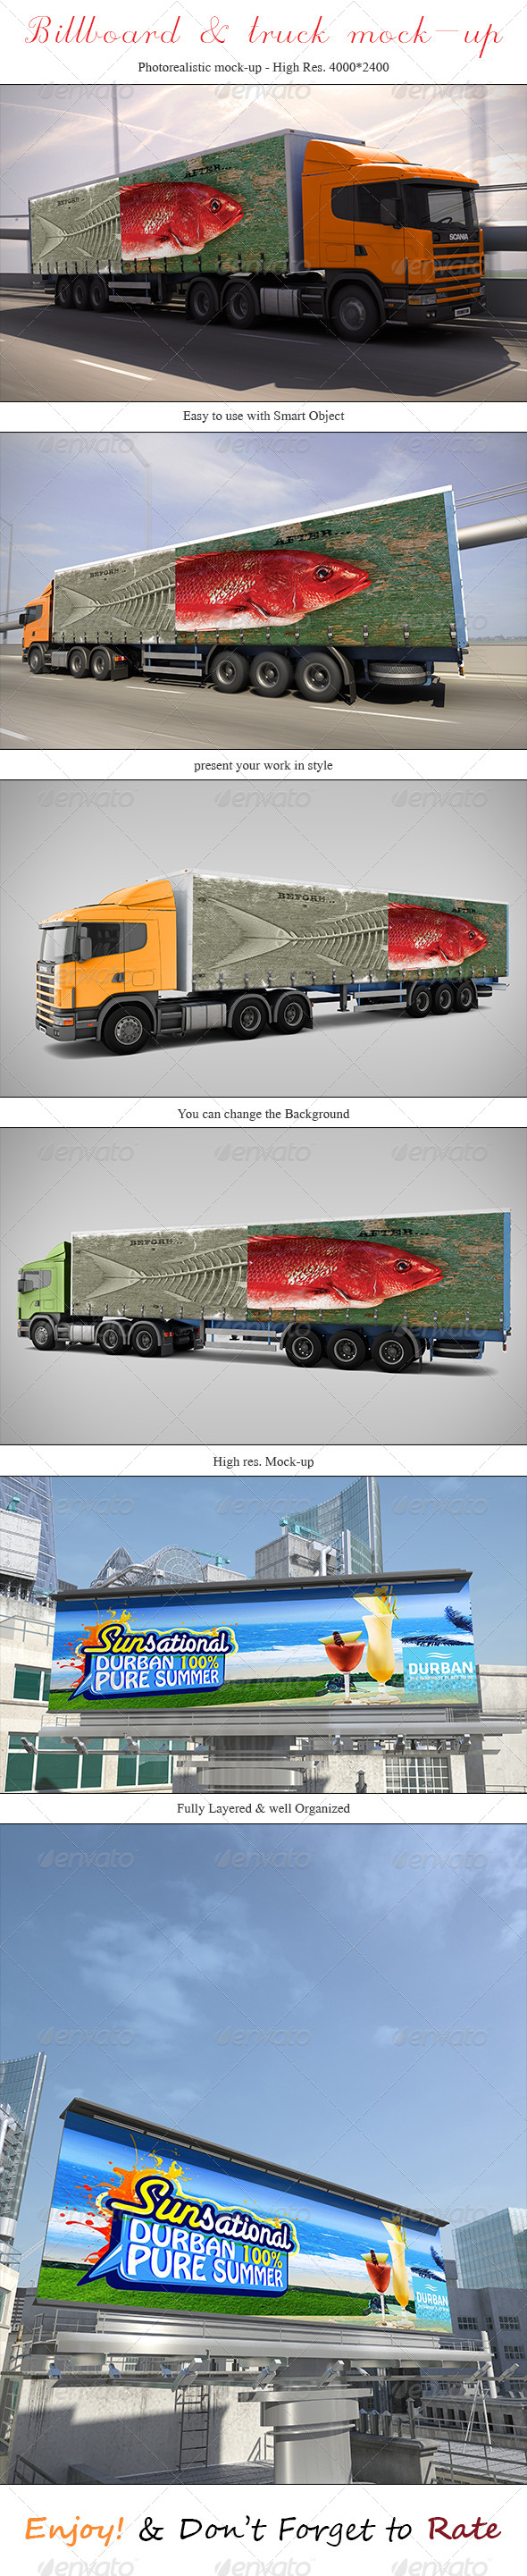 GraphicRiver Billboard & Truck Mock-up 5310583